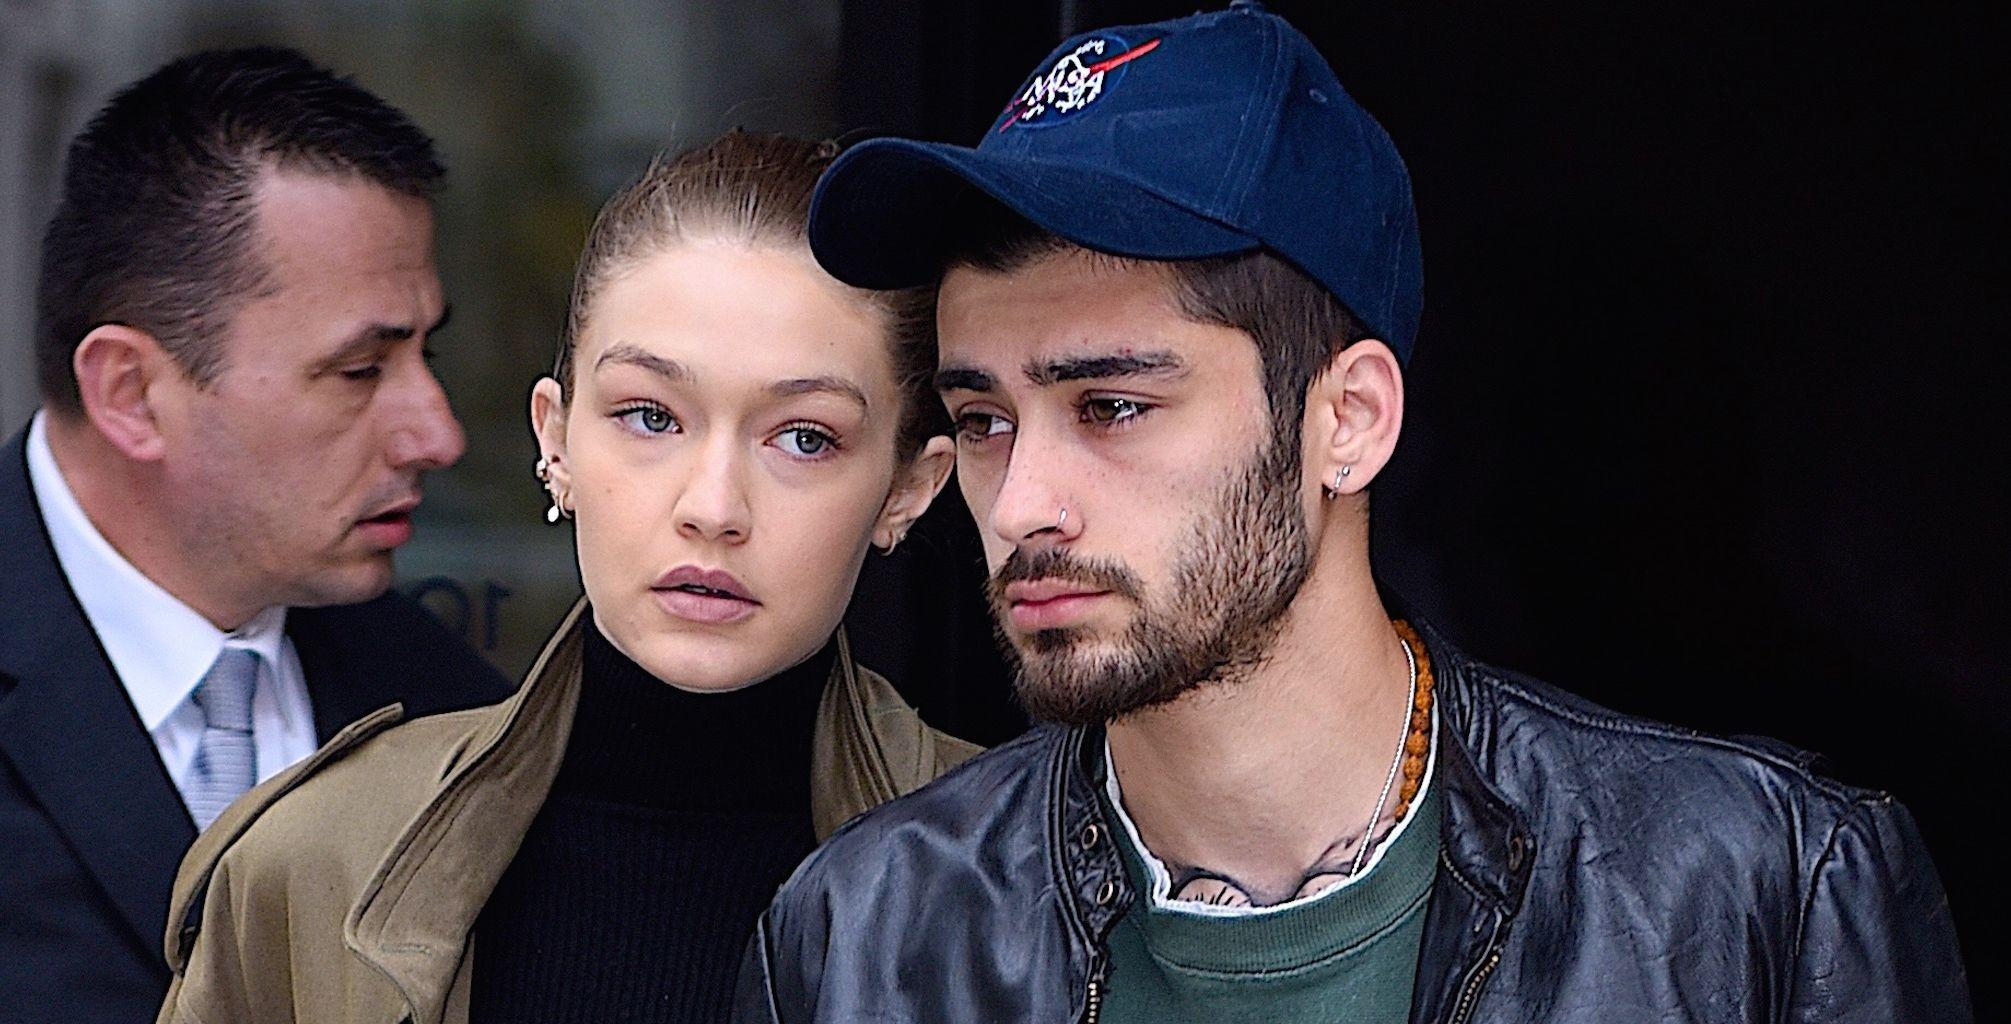 Gigi Hadid And Zayn Malik Back Together? - Fans Are Convinced After The Model Gives Sweet Shoutout To His Mom!